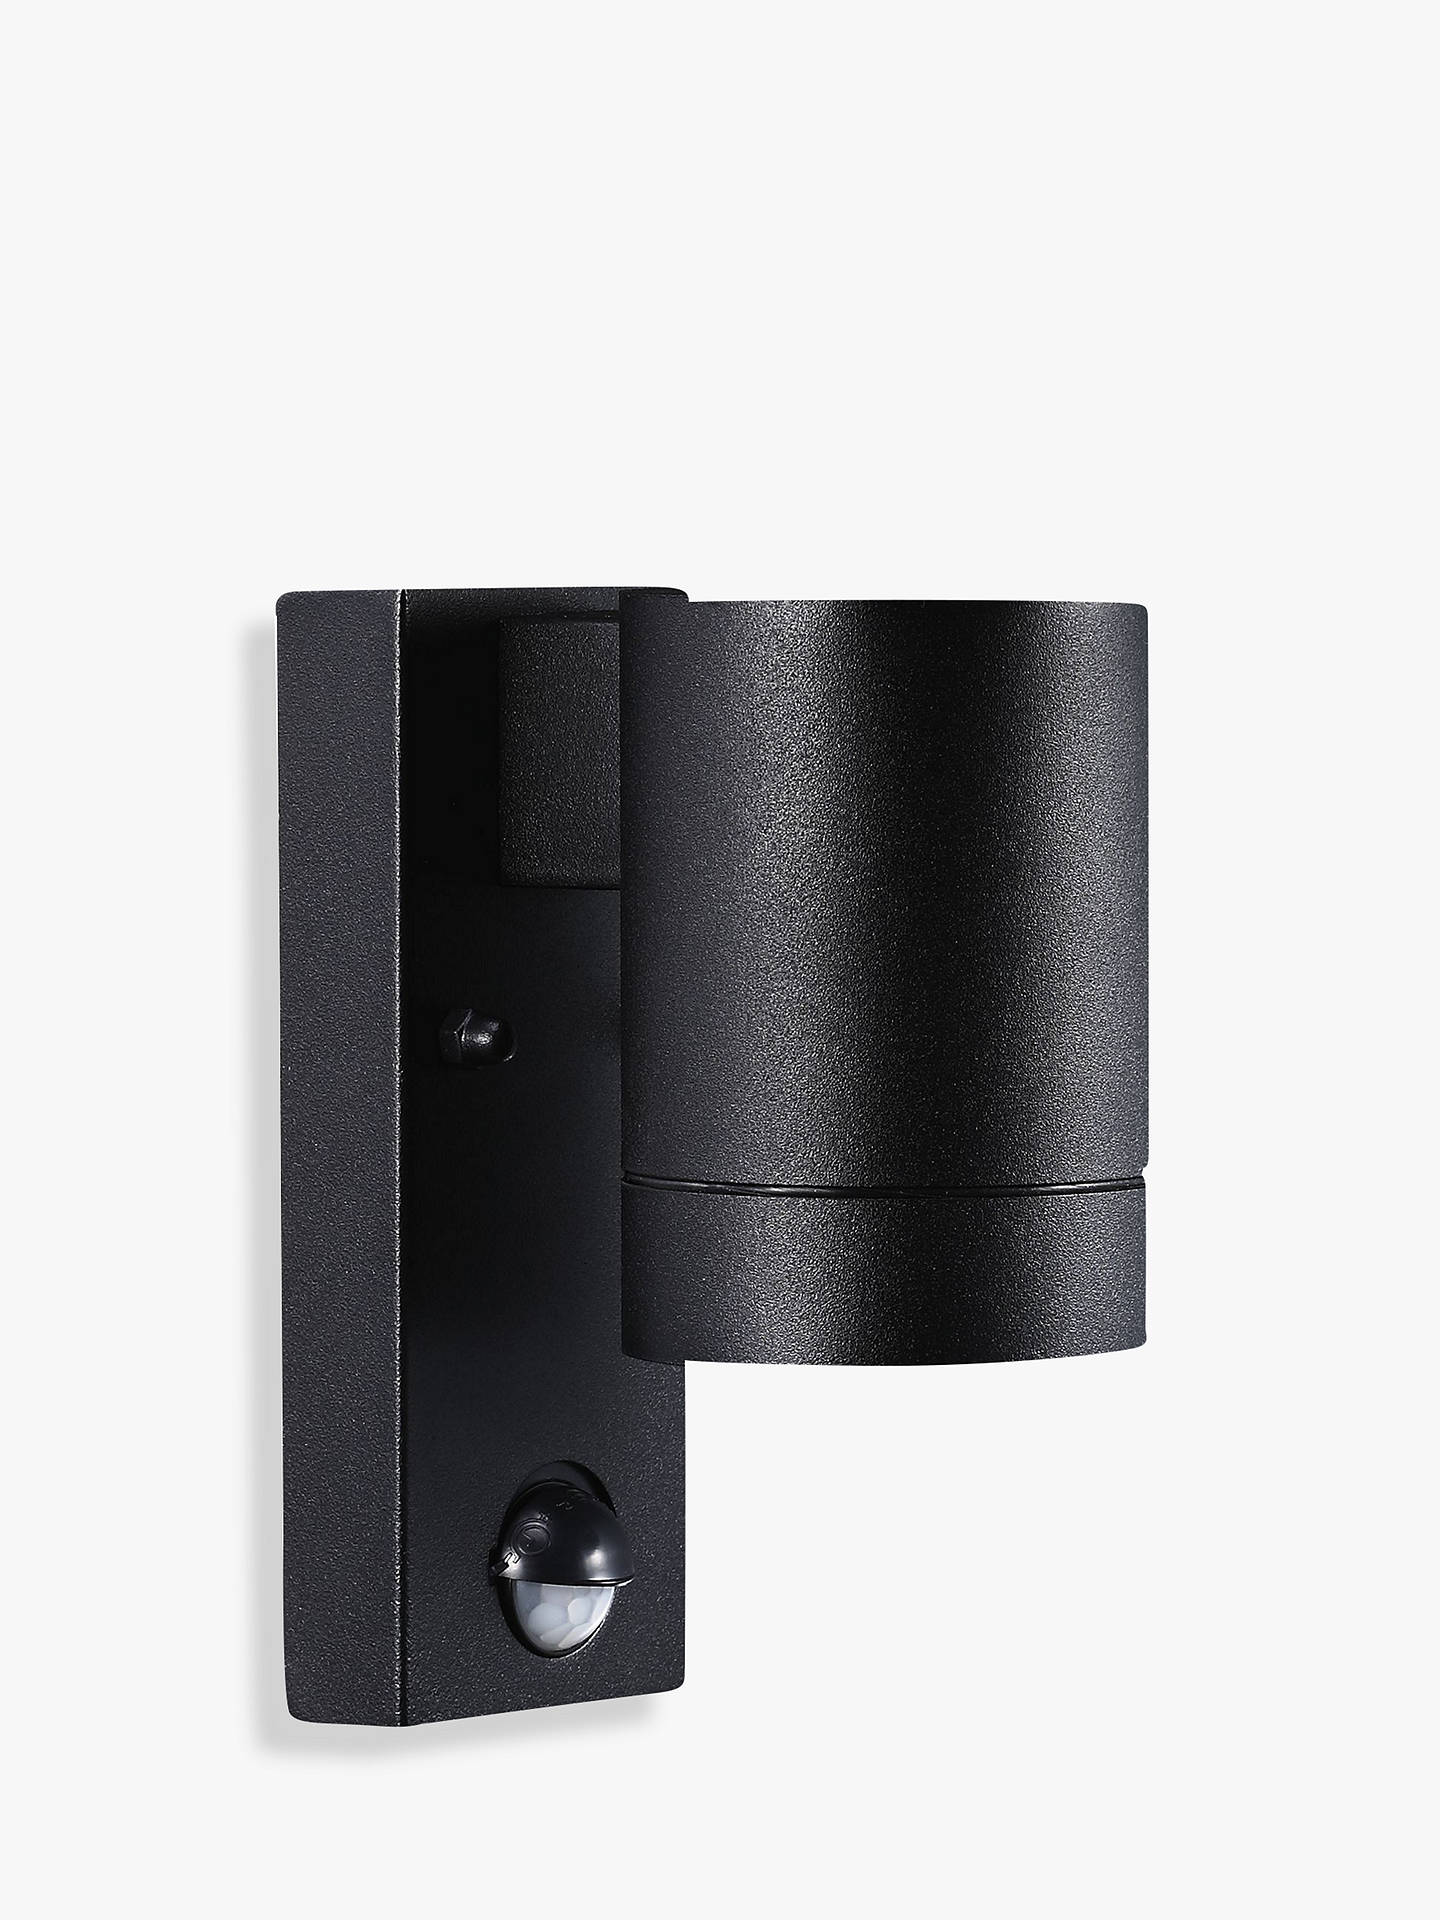 BuyNordlux Tin Maxi PIR Outdoor Sensor Wall Light, Black Online at johnlewis.com